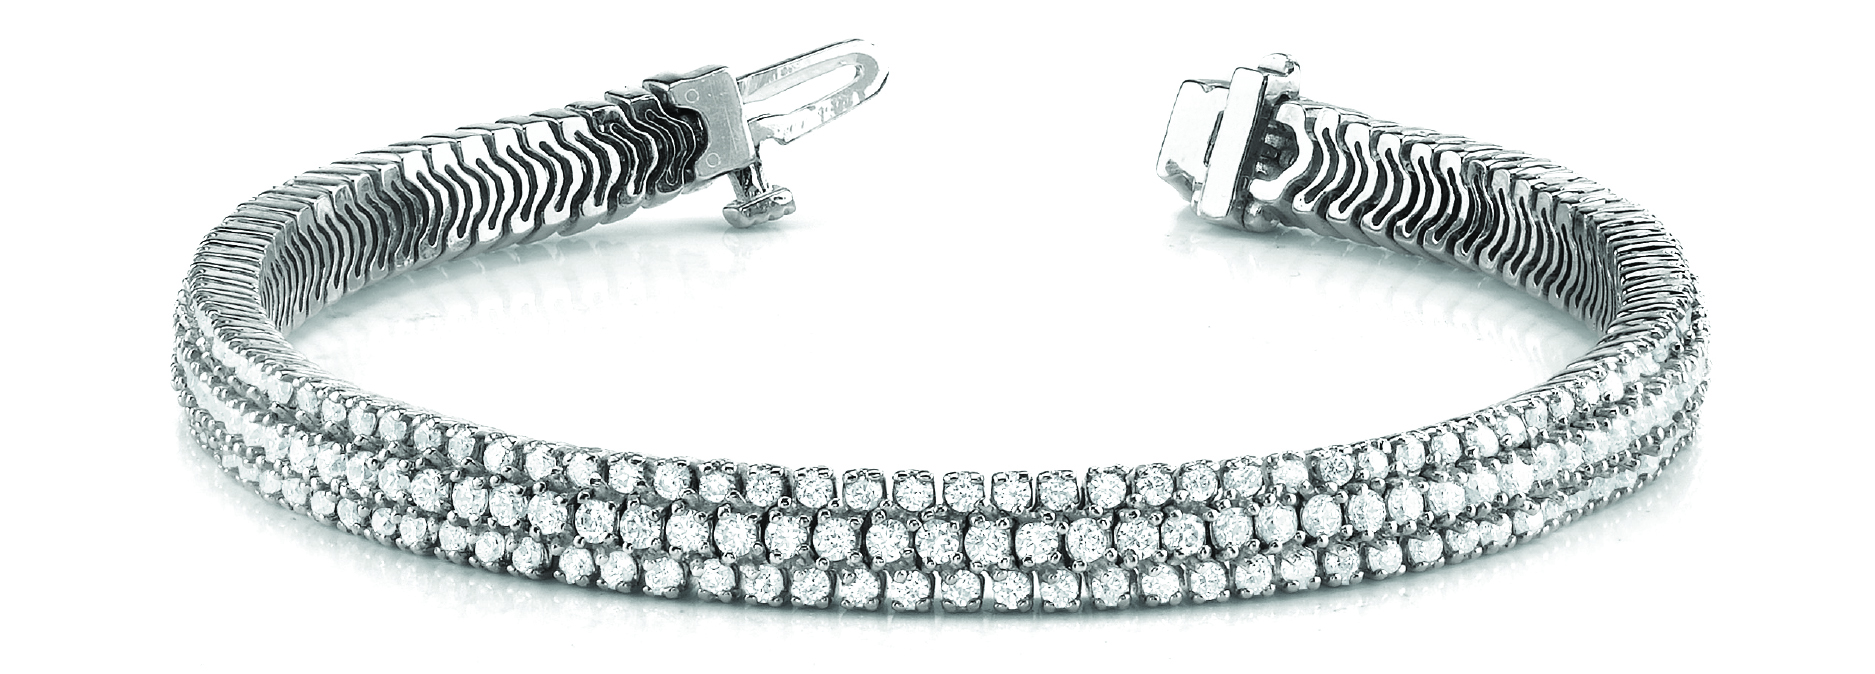 Multi Row Etoil Round Diamond Bracelet 7 Ct.